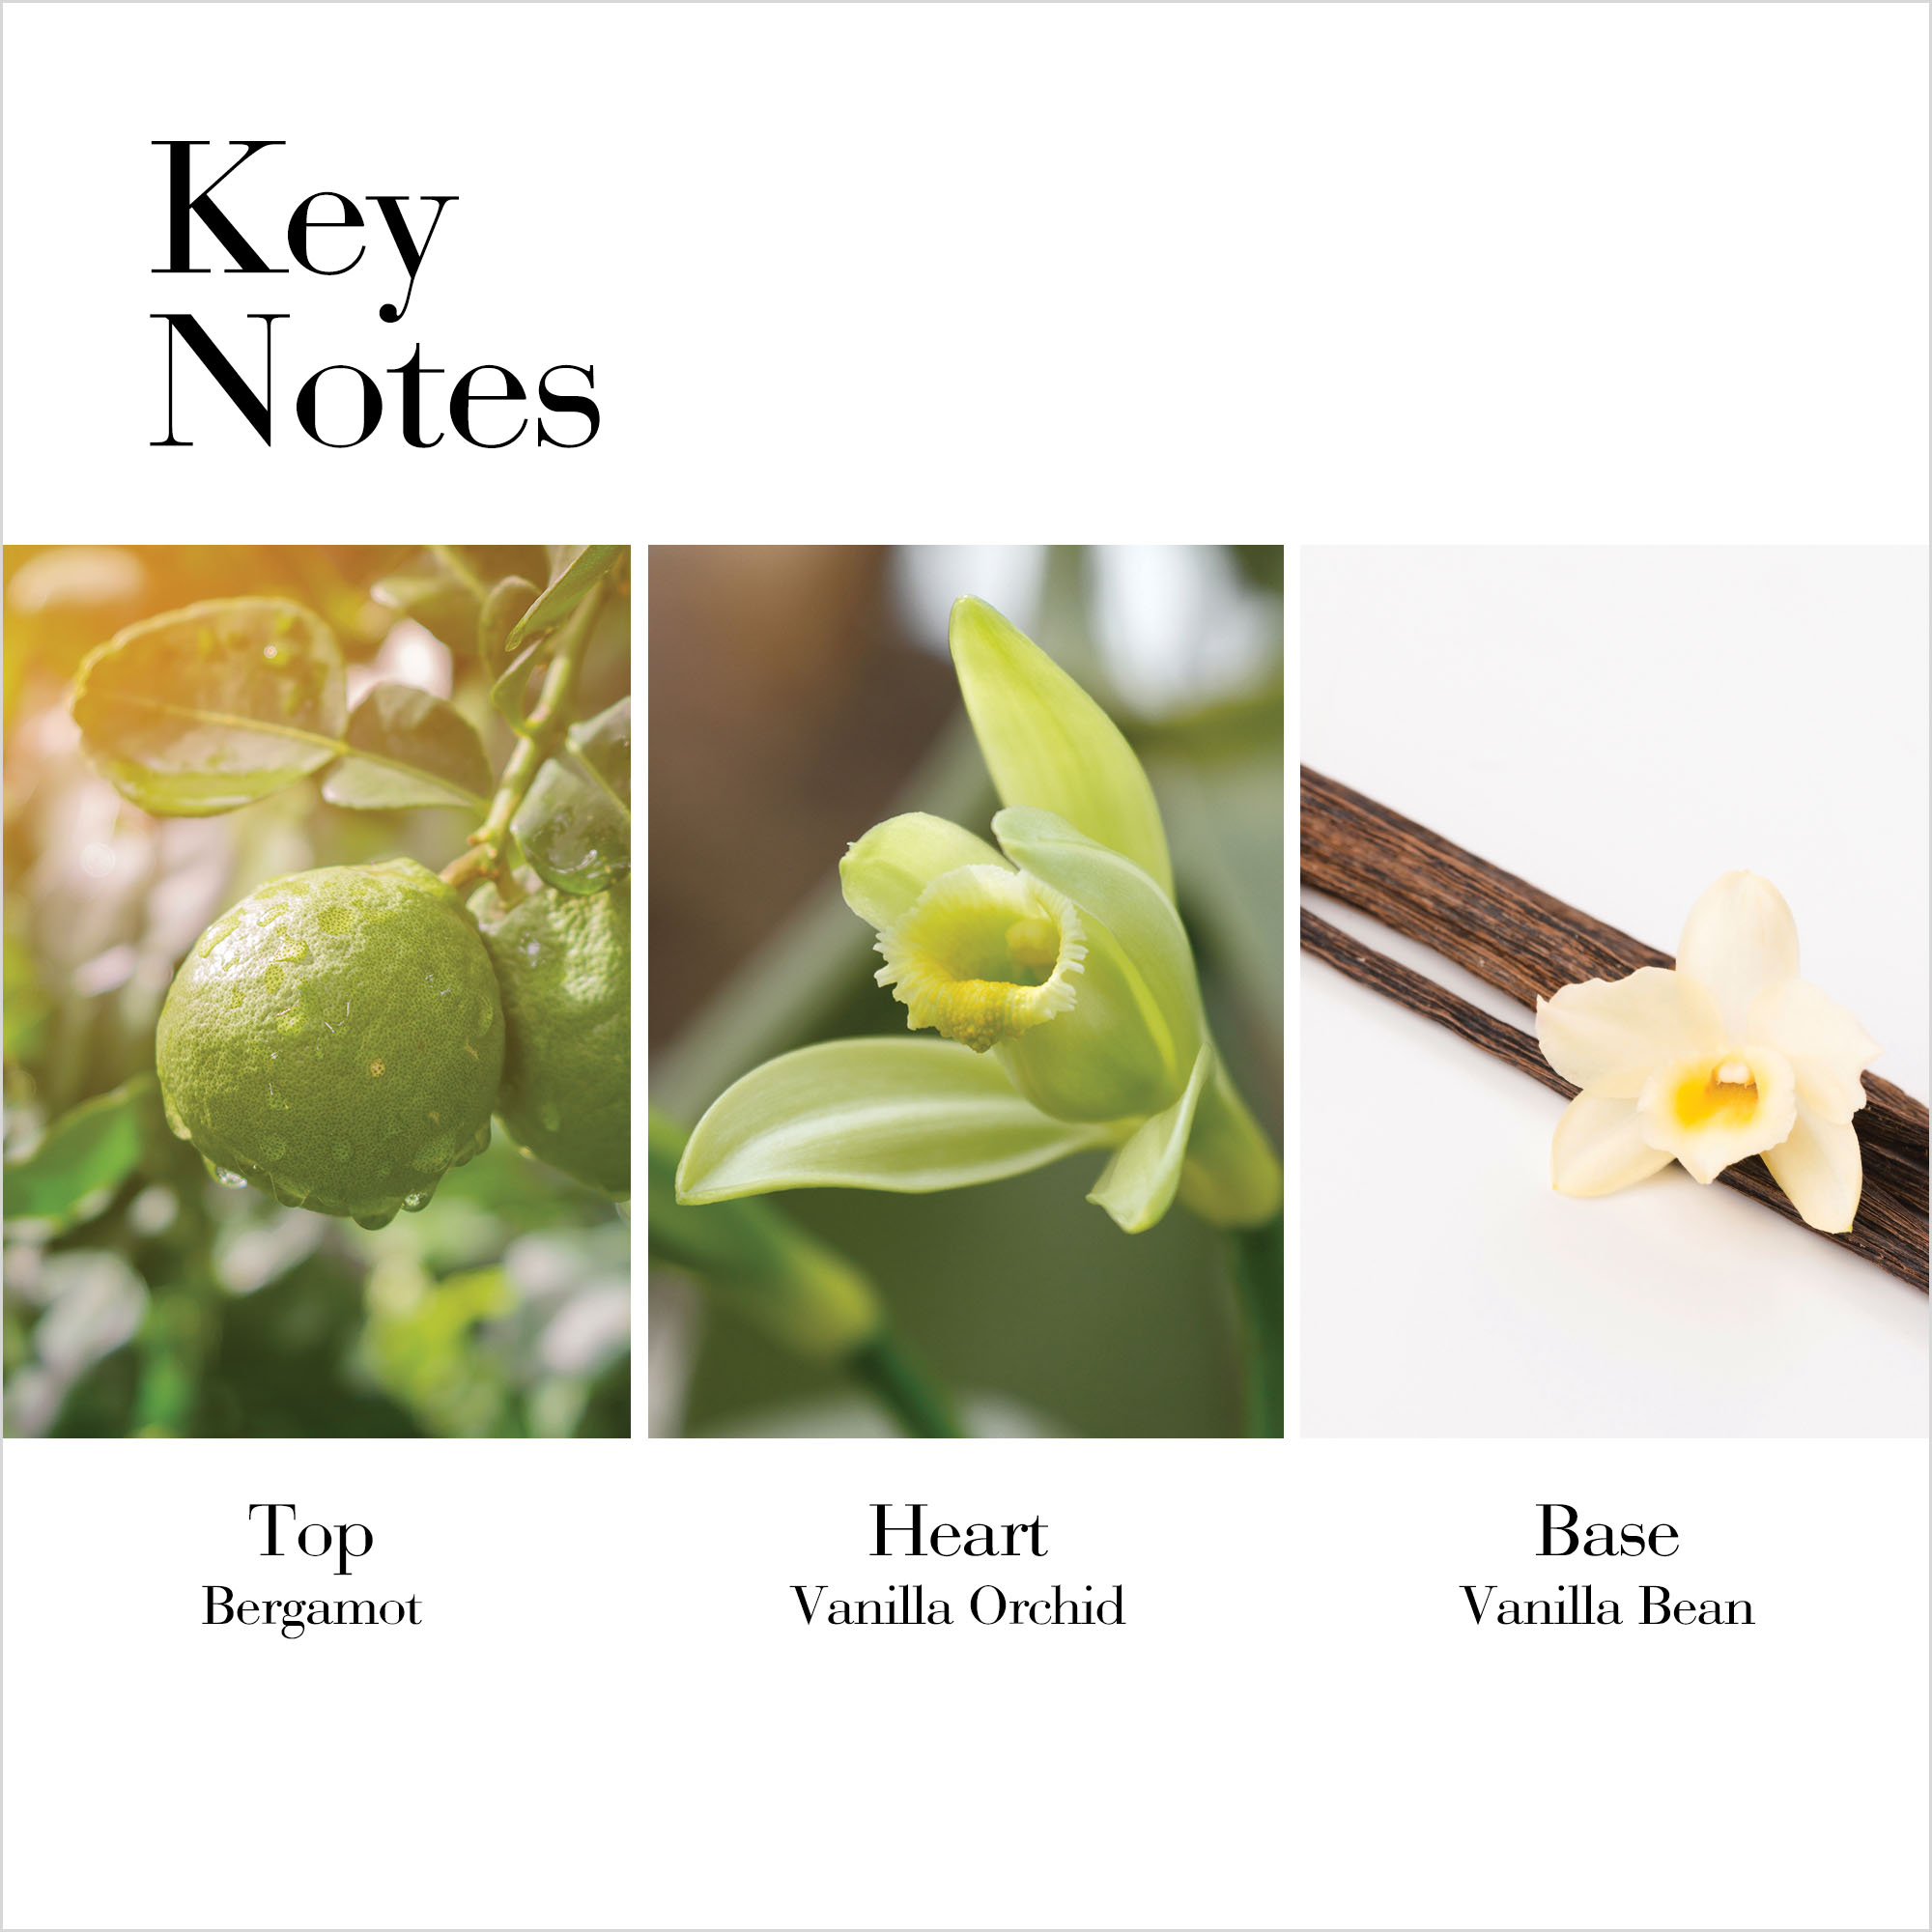 Key Notes: Top Bergamot, Heart Vanilla Orchid, Base Vanilla Bean